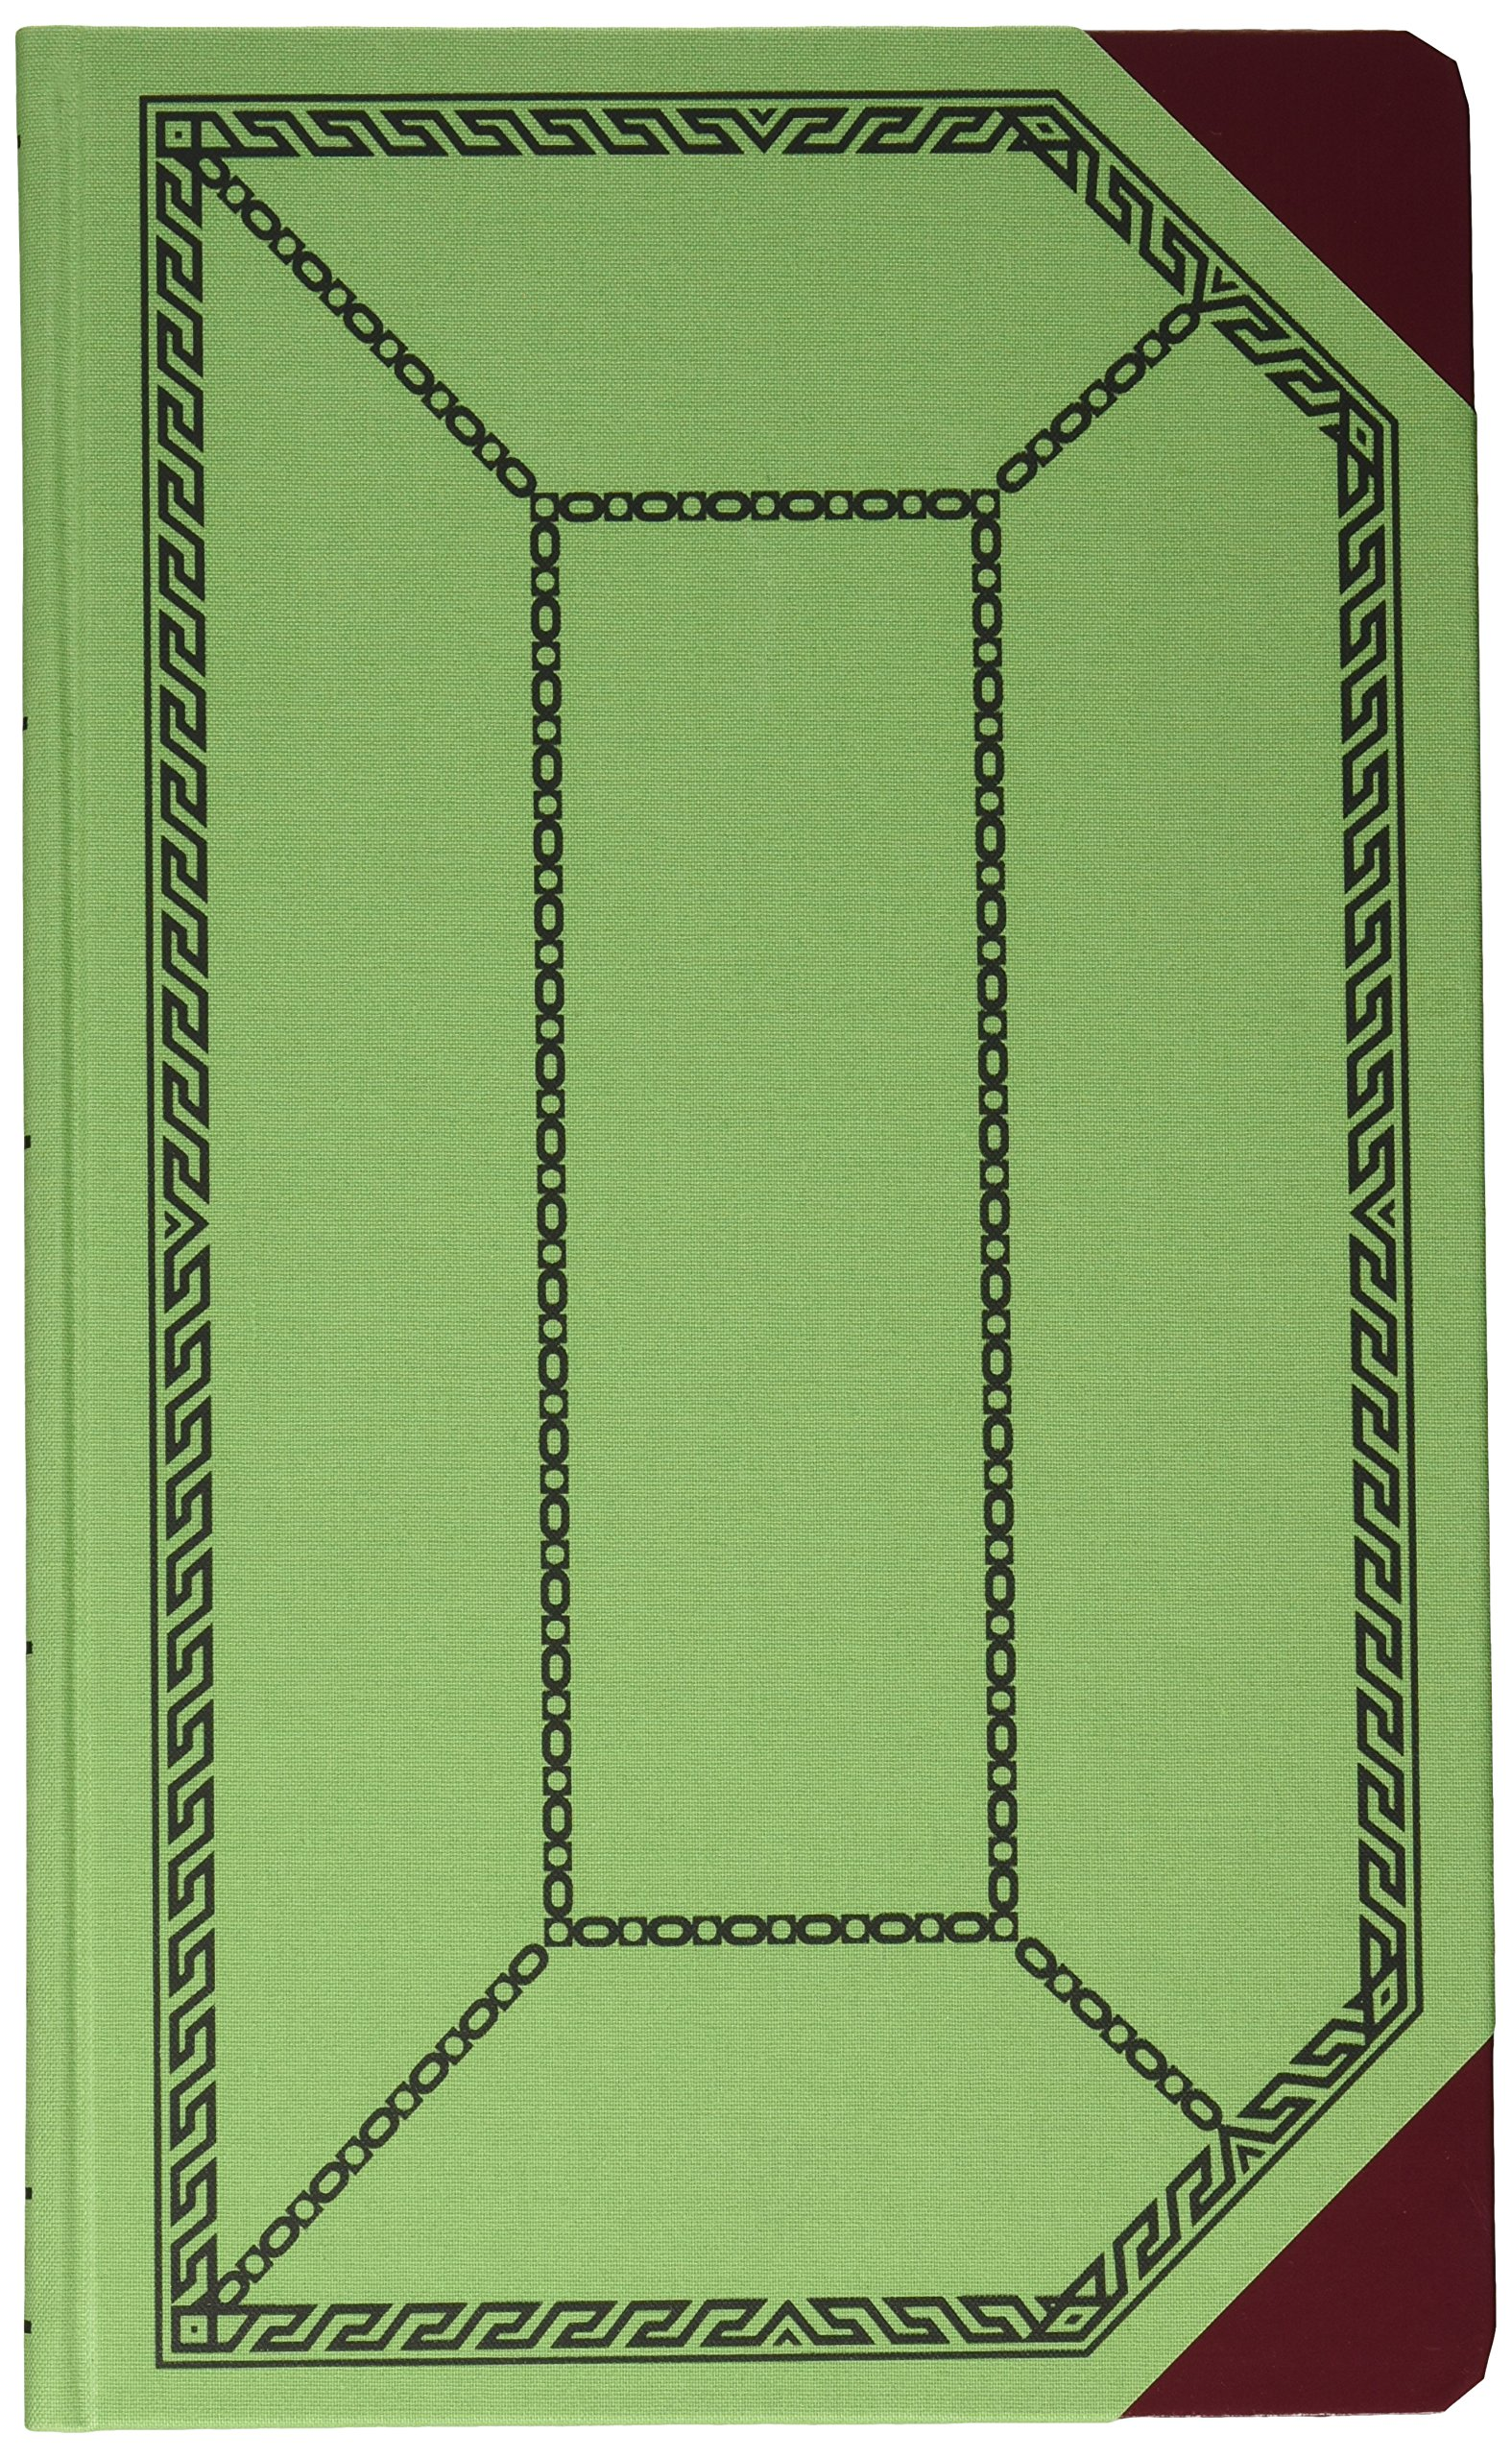 Boorum & Pease 6718150J Record/account book, green/red cover, journal rule, 12-1/2 x 7-5/8, 150 pages